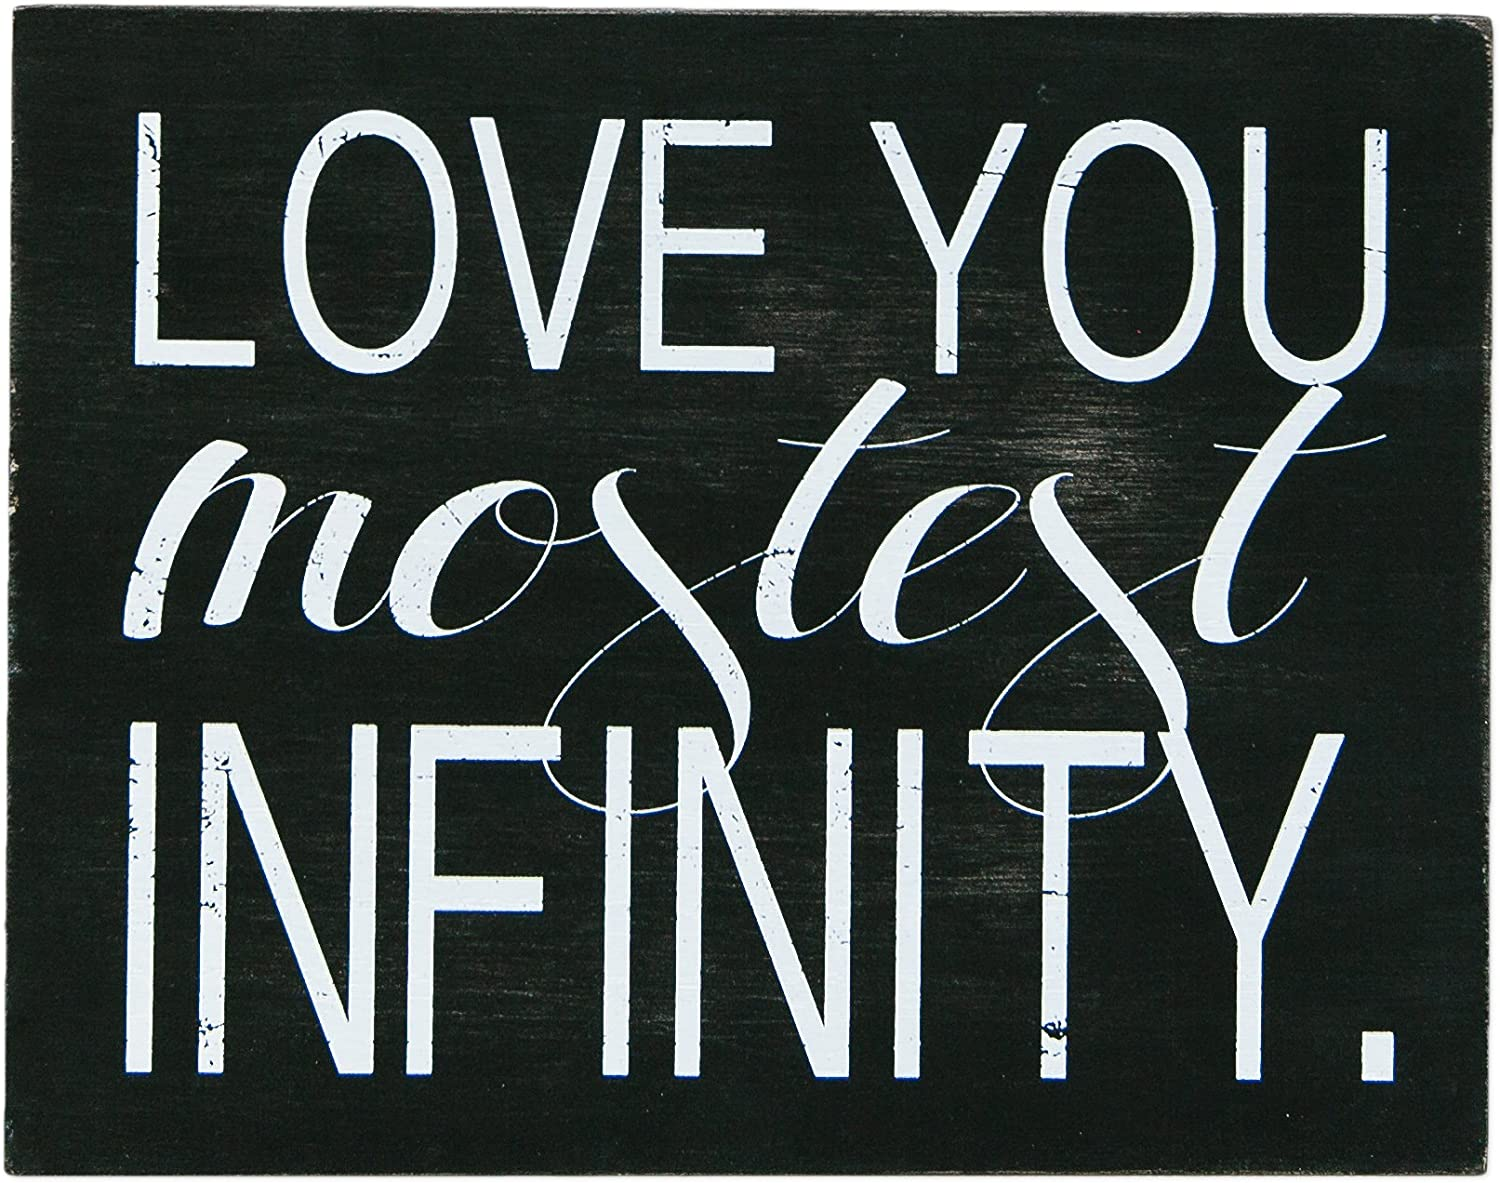 Love You Mostest Infinity Black 9 x 7 Inch Wood Hanging Wall Plaque Sign